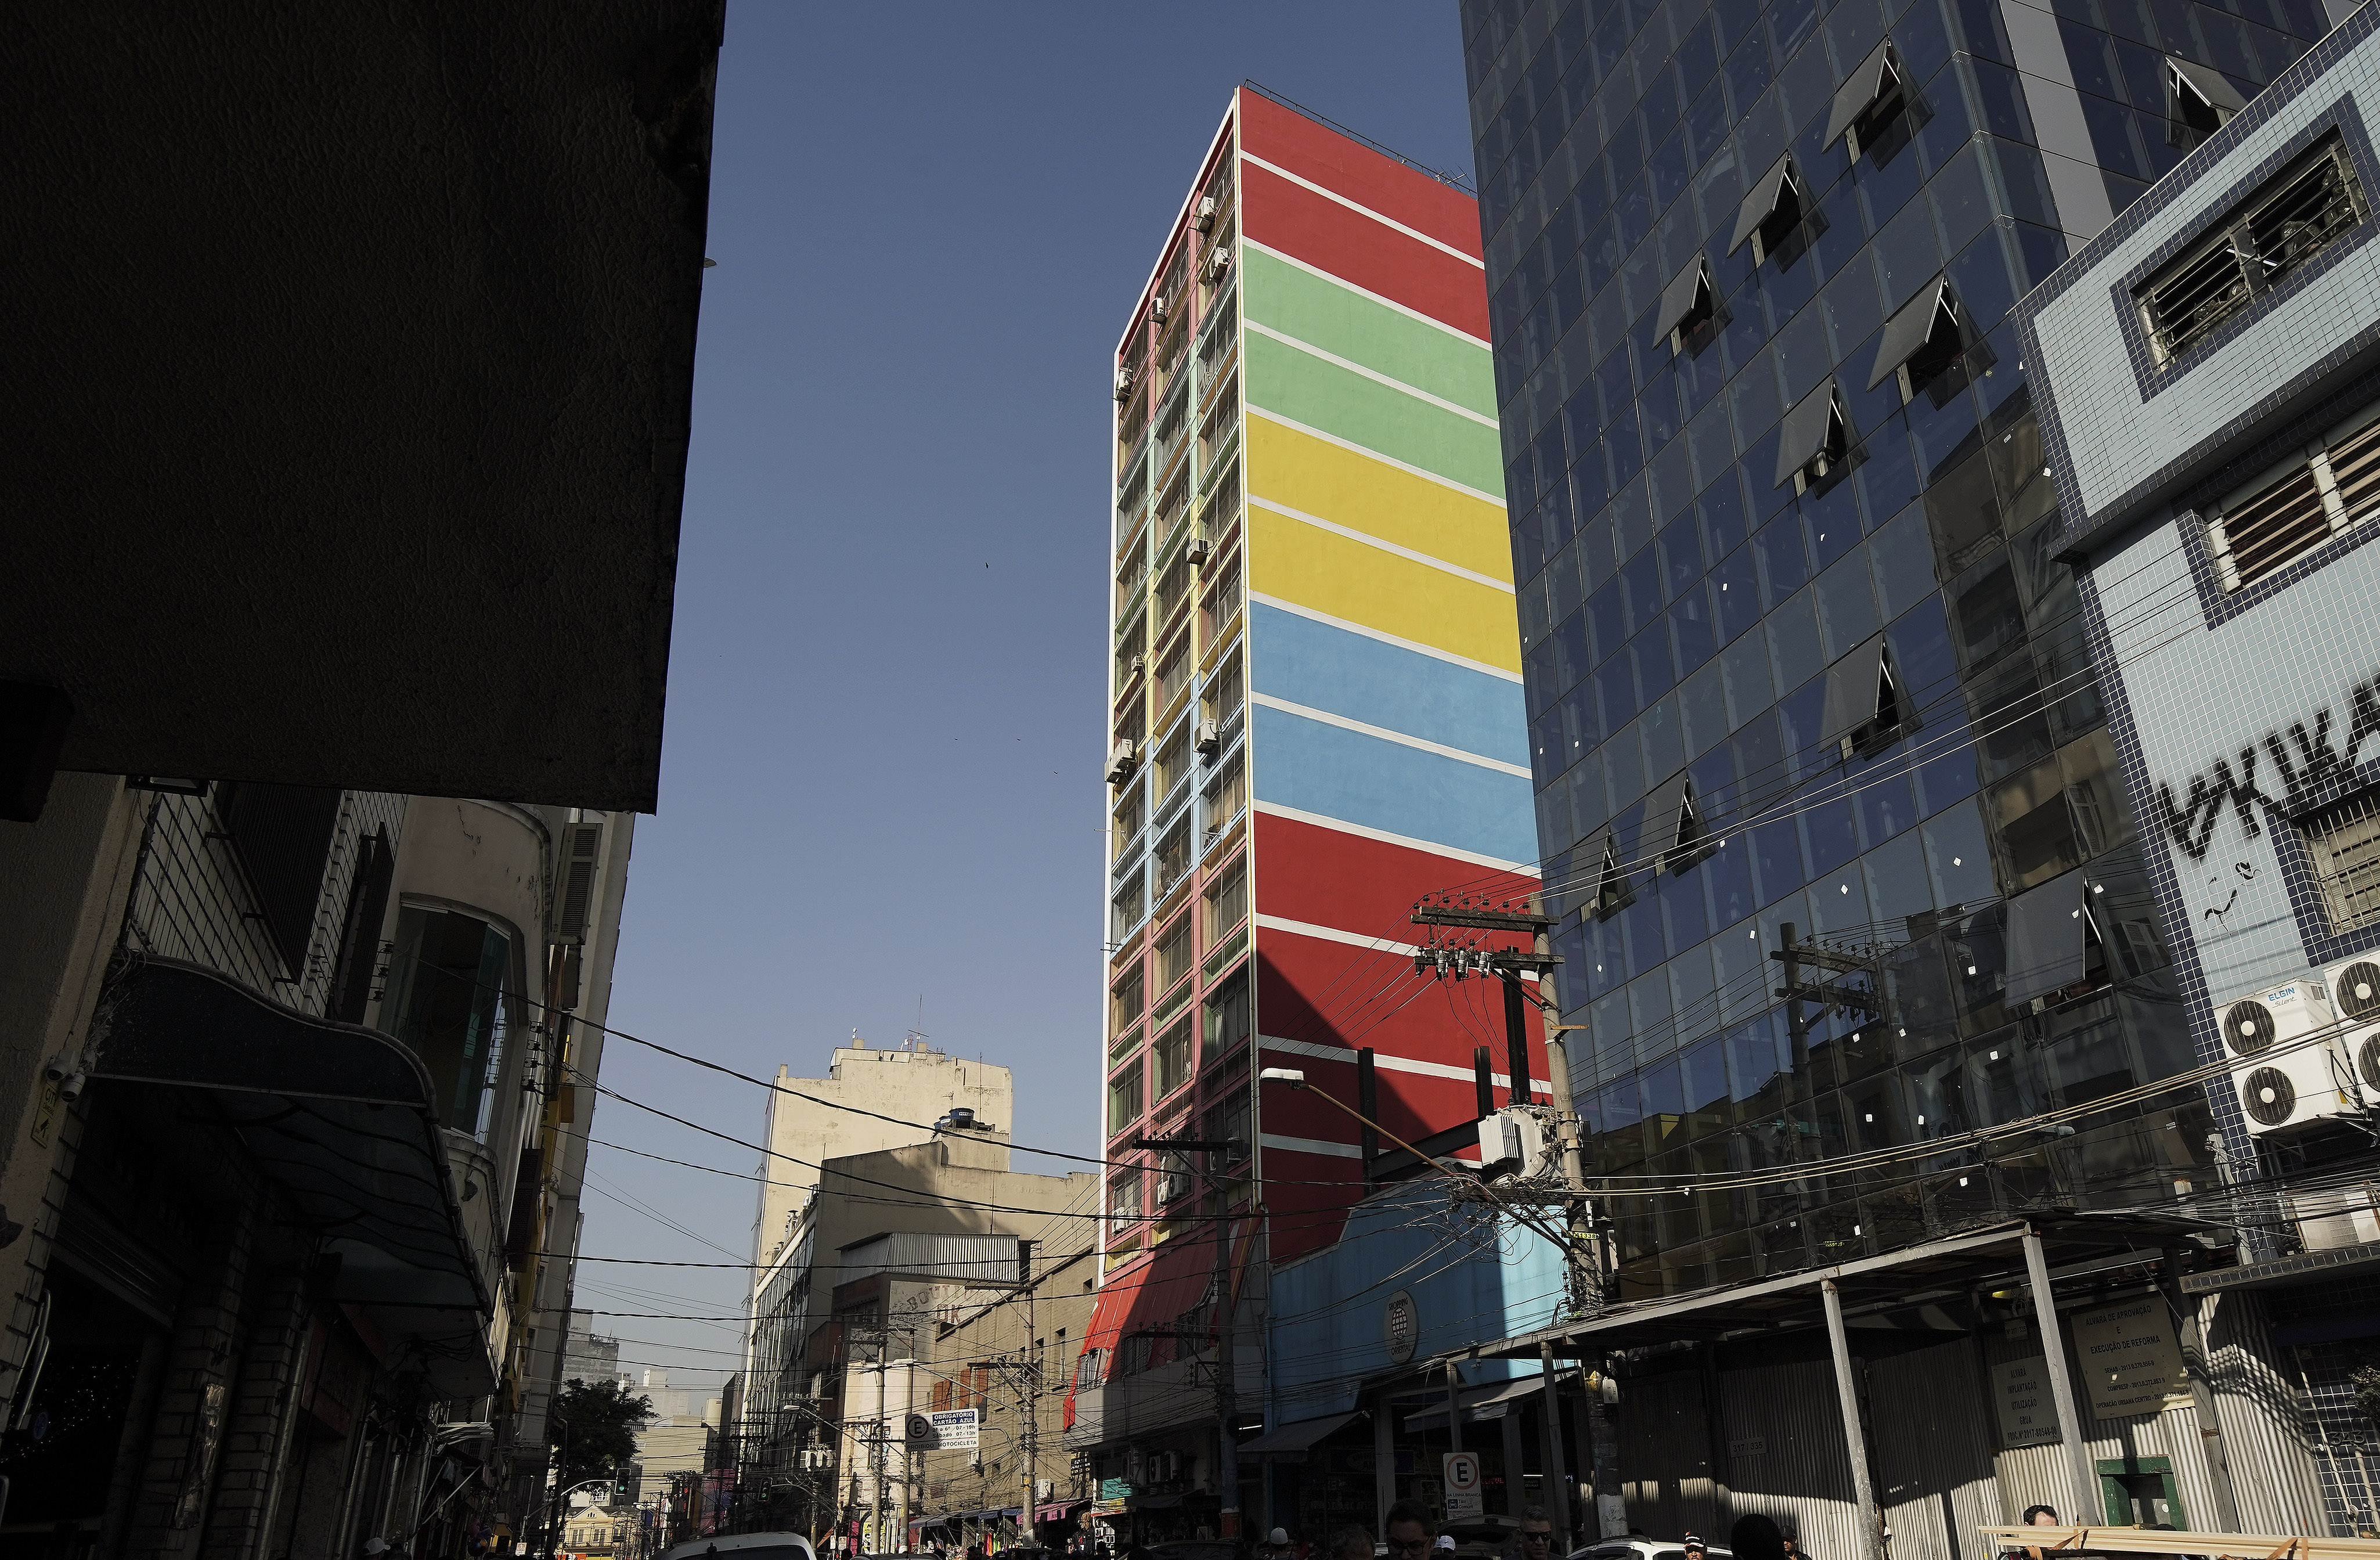 A colorful building in downtown in Sao Paulo, Brazil, on Aug. 31, 2019.